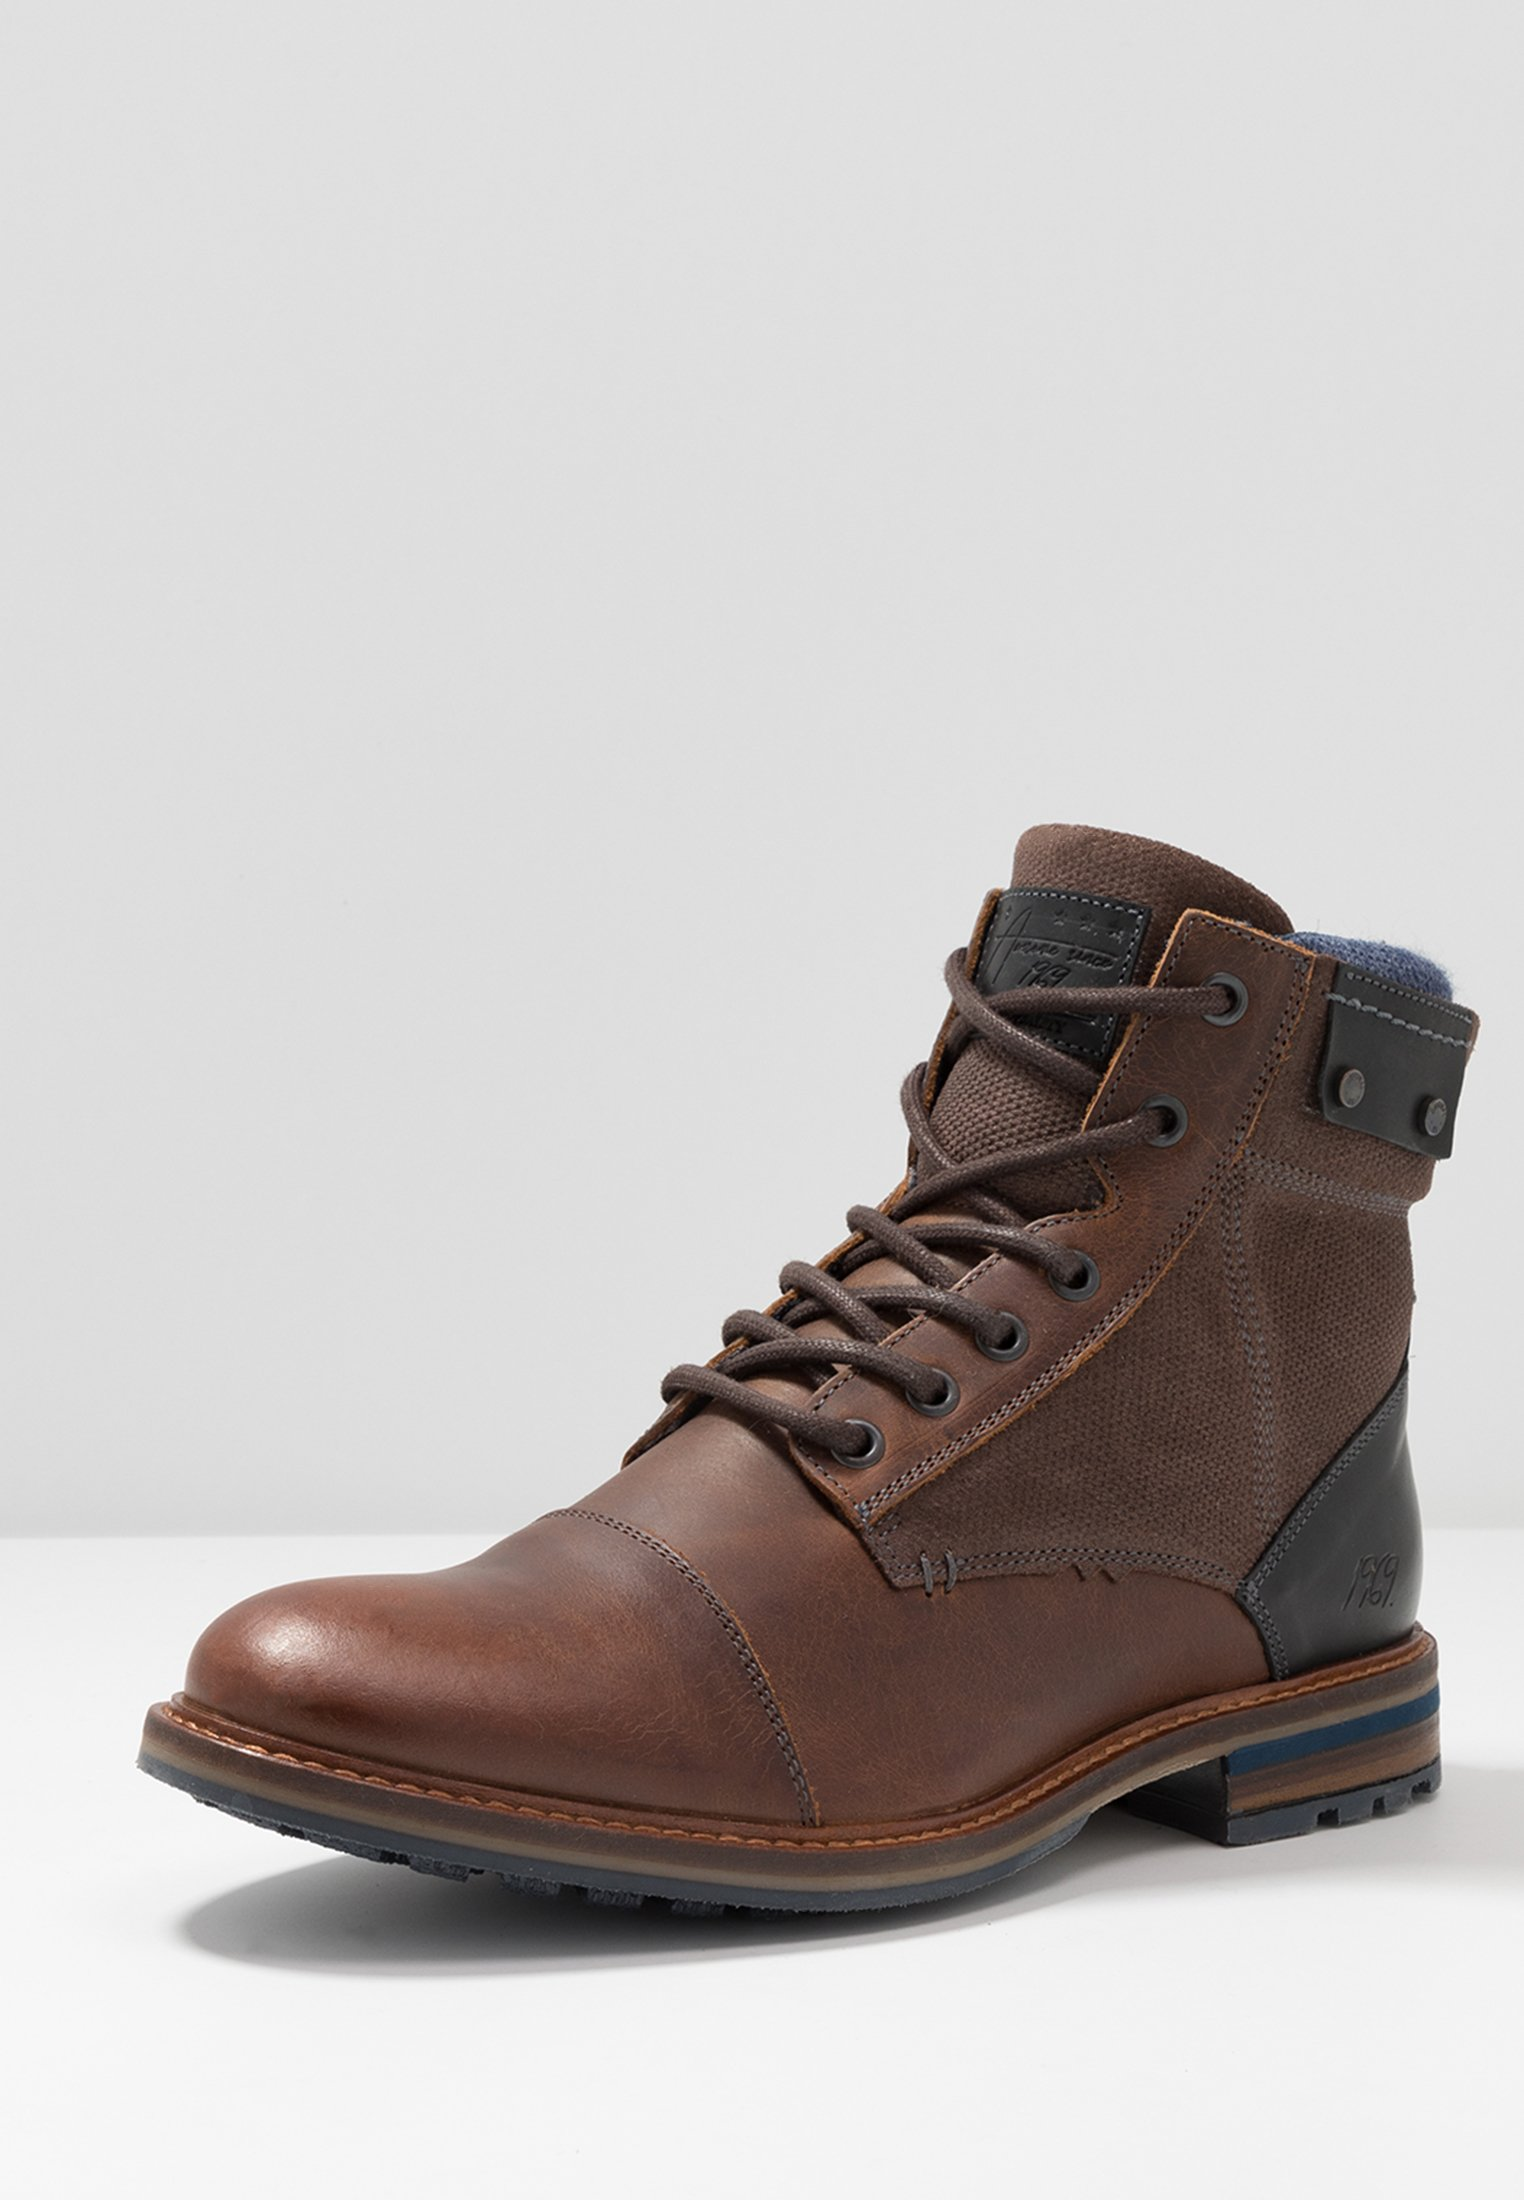 Get Cheapest Bullboxer Lace-up ankle boots - brown | men's shoes 2020 OHYVP